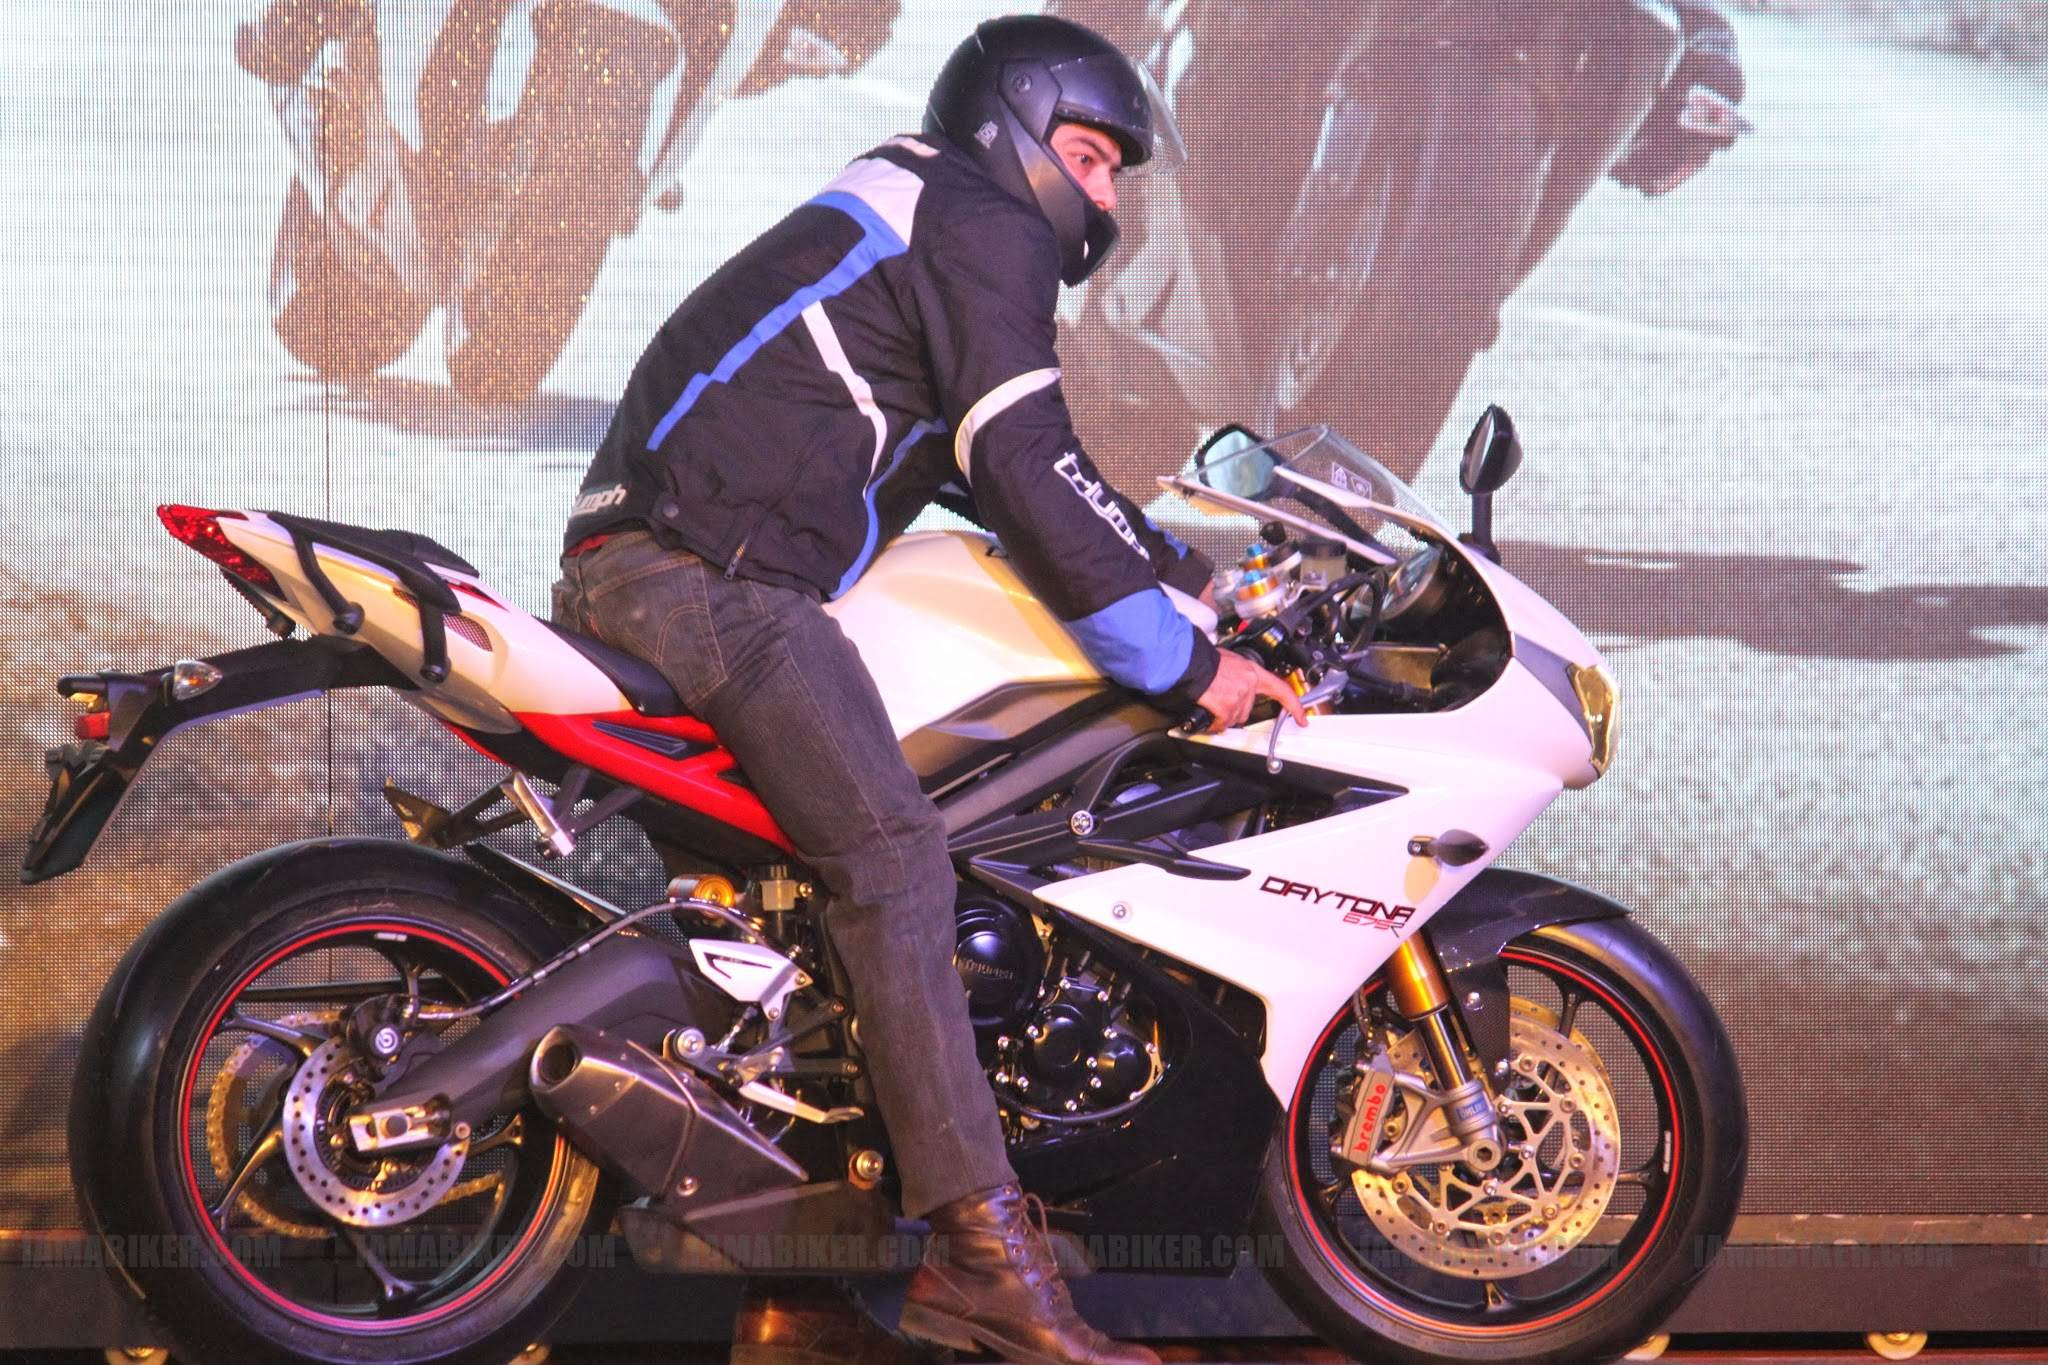 triumph motorcycles india launch - 22